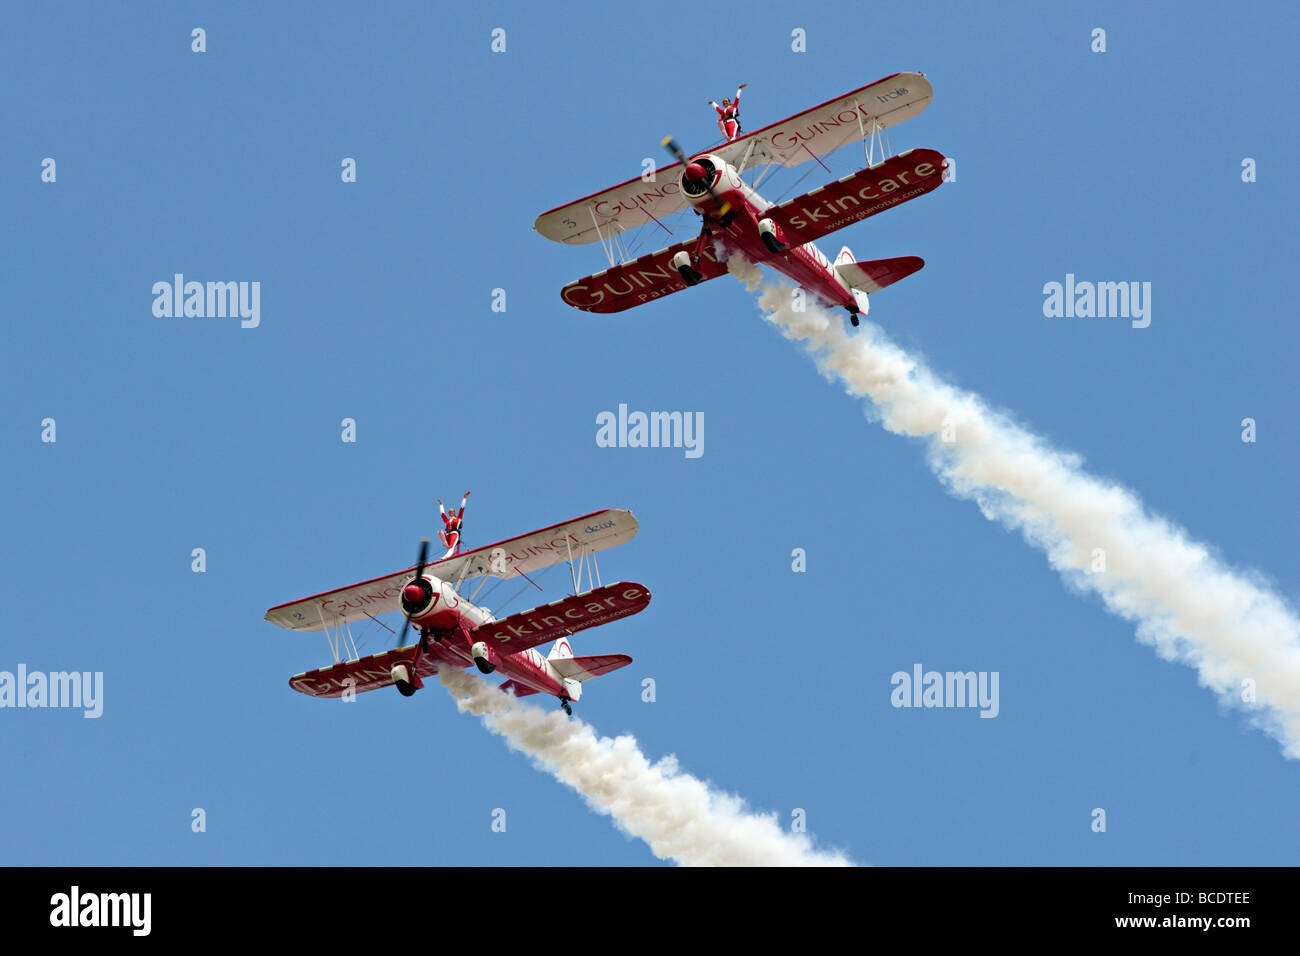 Two Boeing Stearman biplanes from Team Guinot perform their wingwalking feats at the Biggin Hill Airshow 2009. - Stock Image